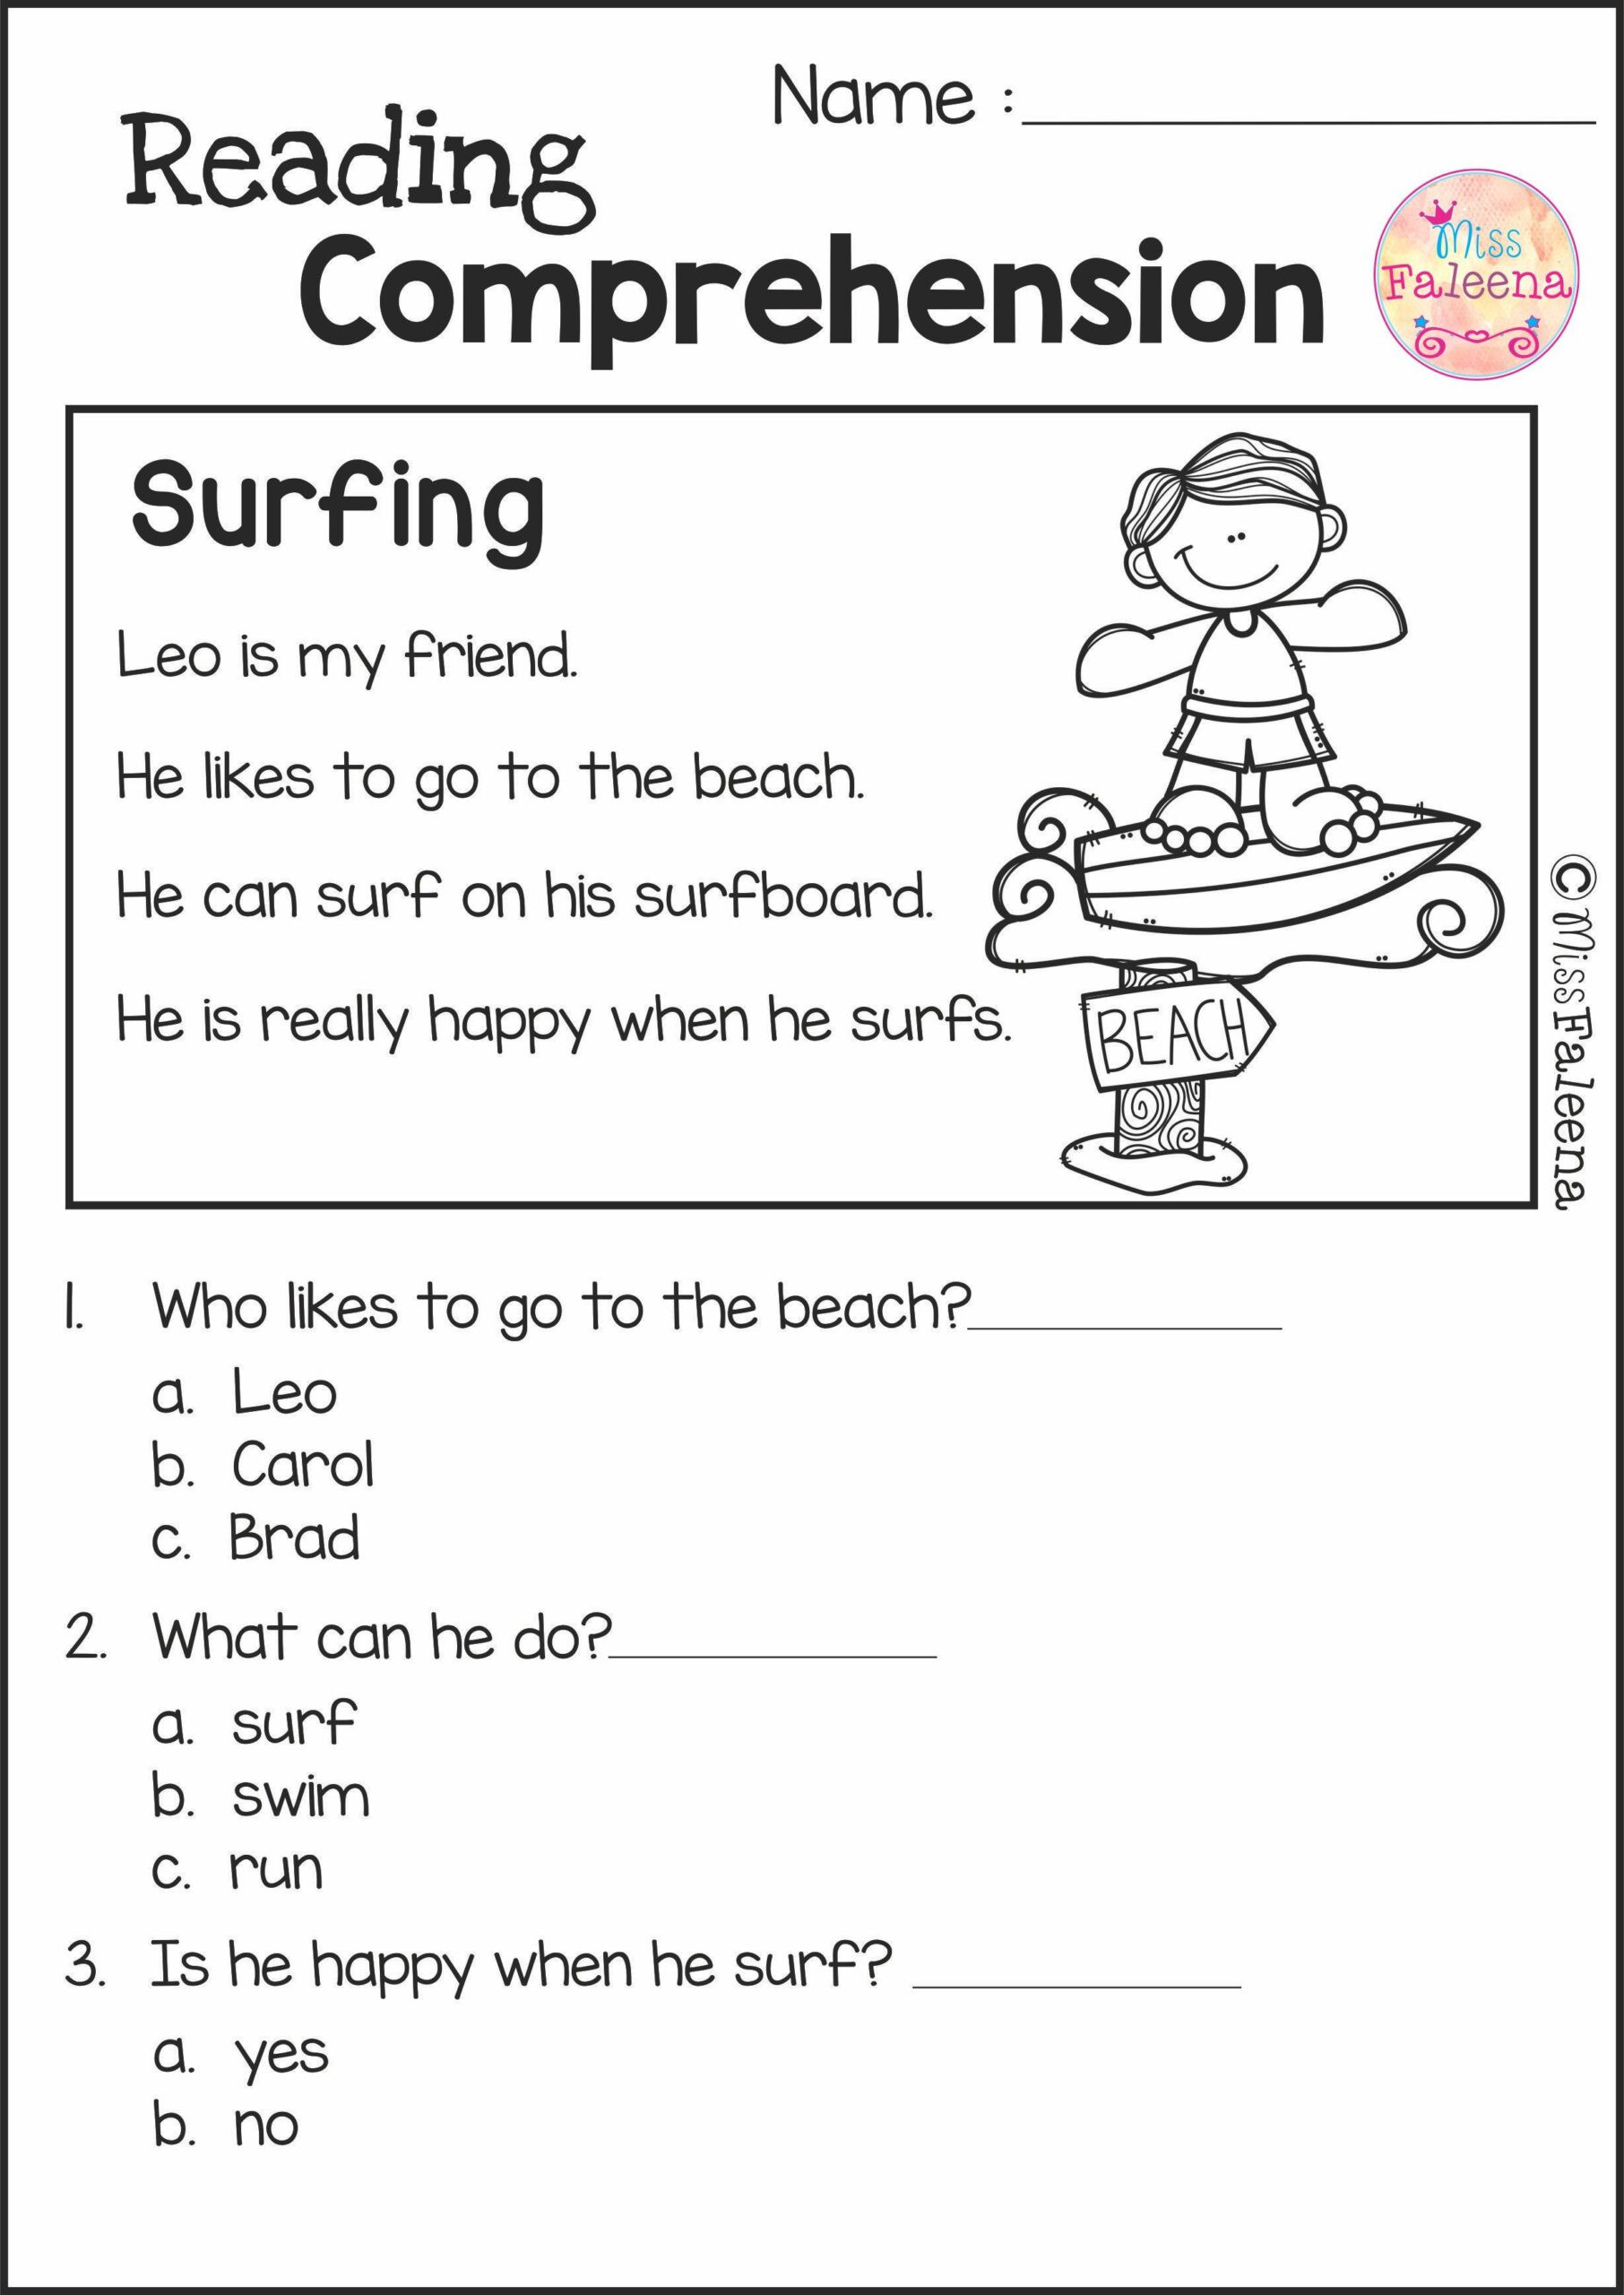 Reading Comprehension 7th Grade Worksheet Reading Prehension Set 2nd Grade Worksheets Get to Know